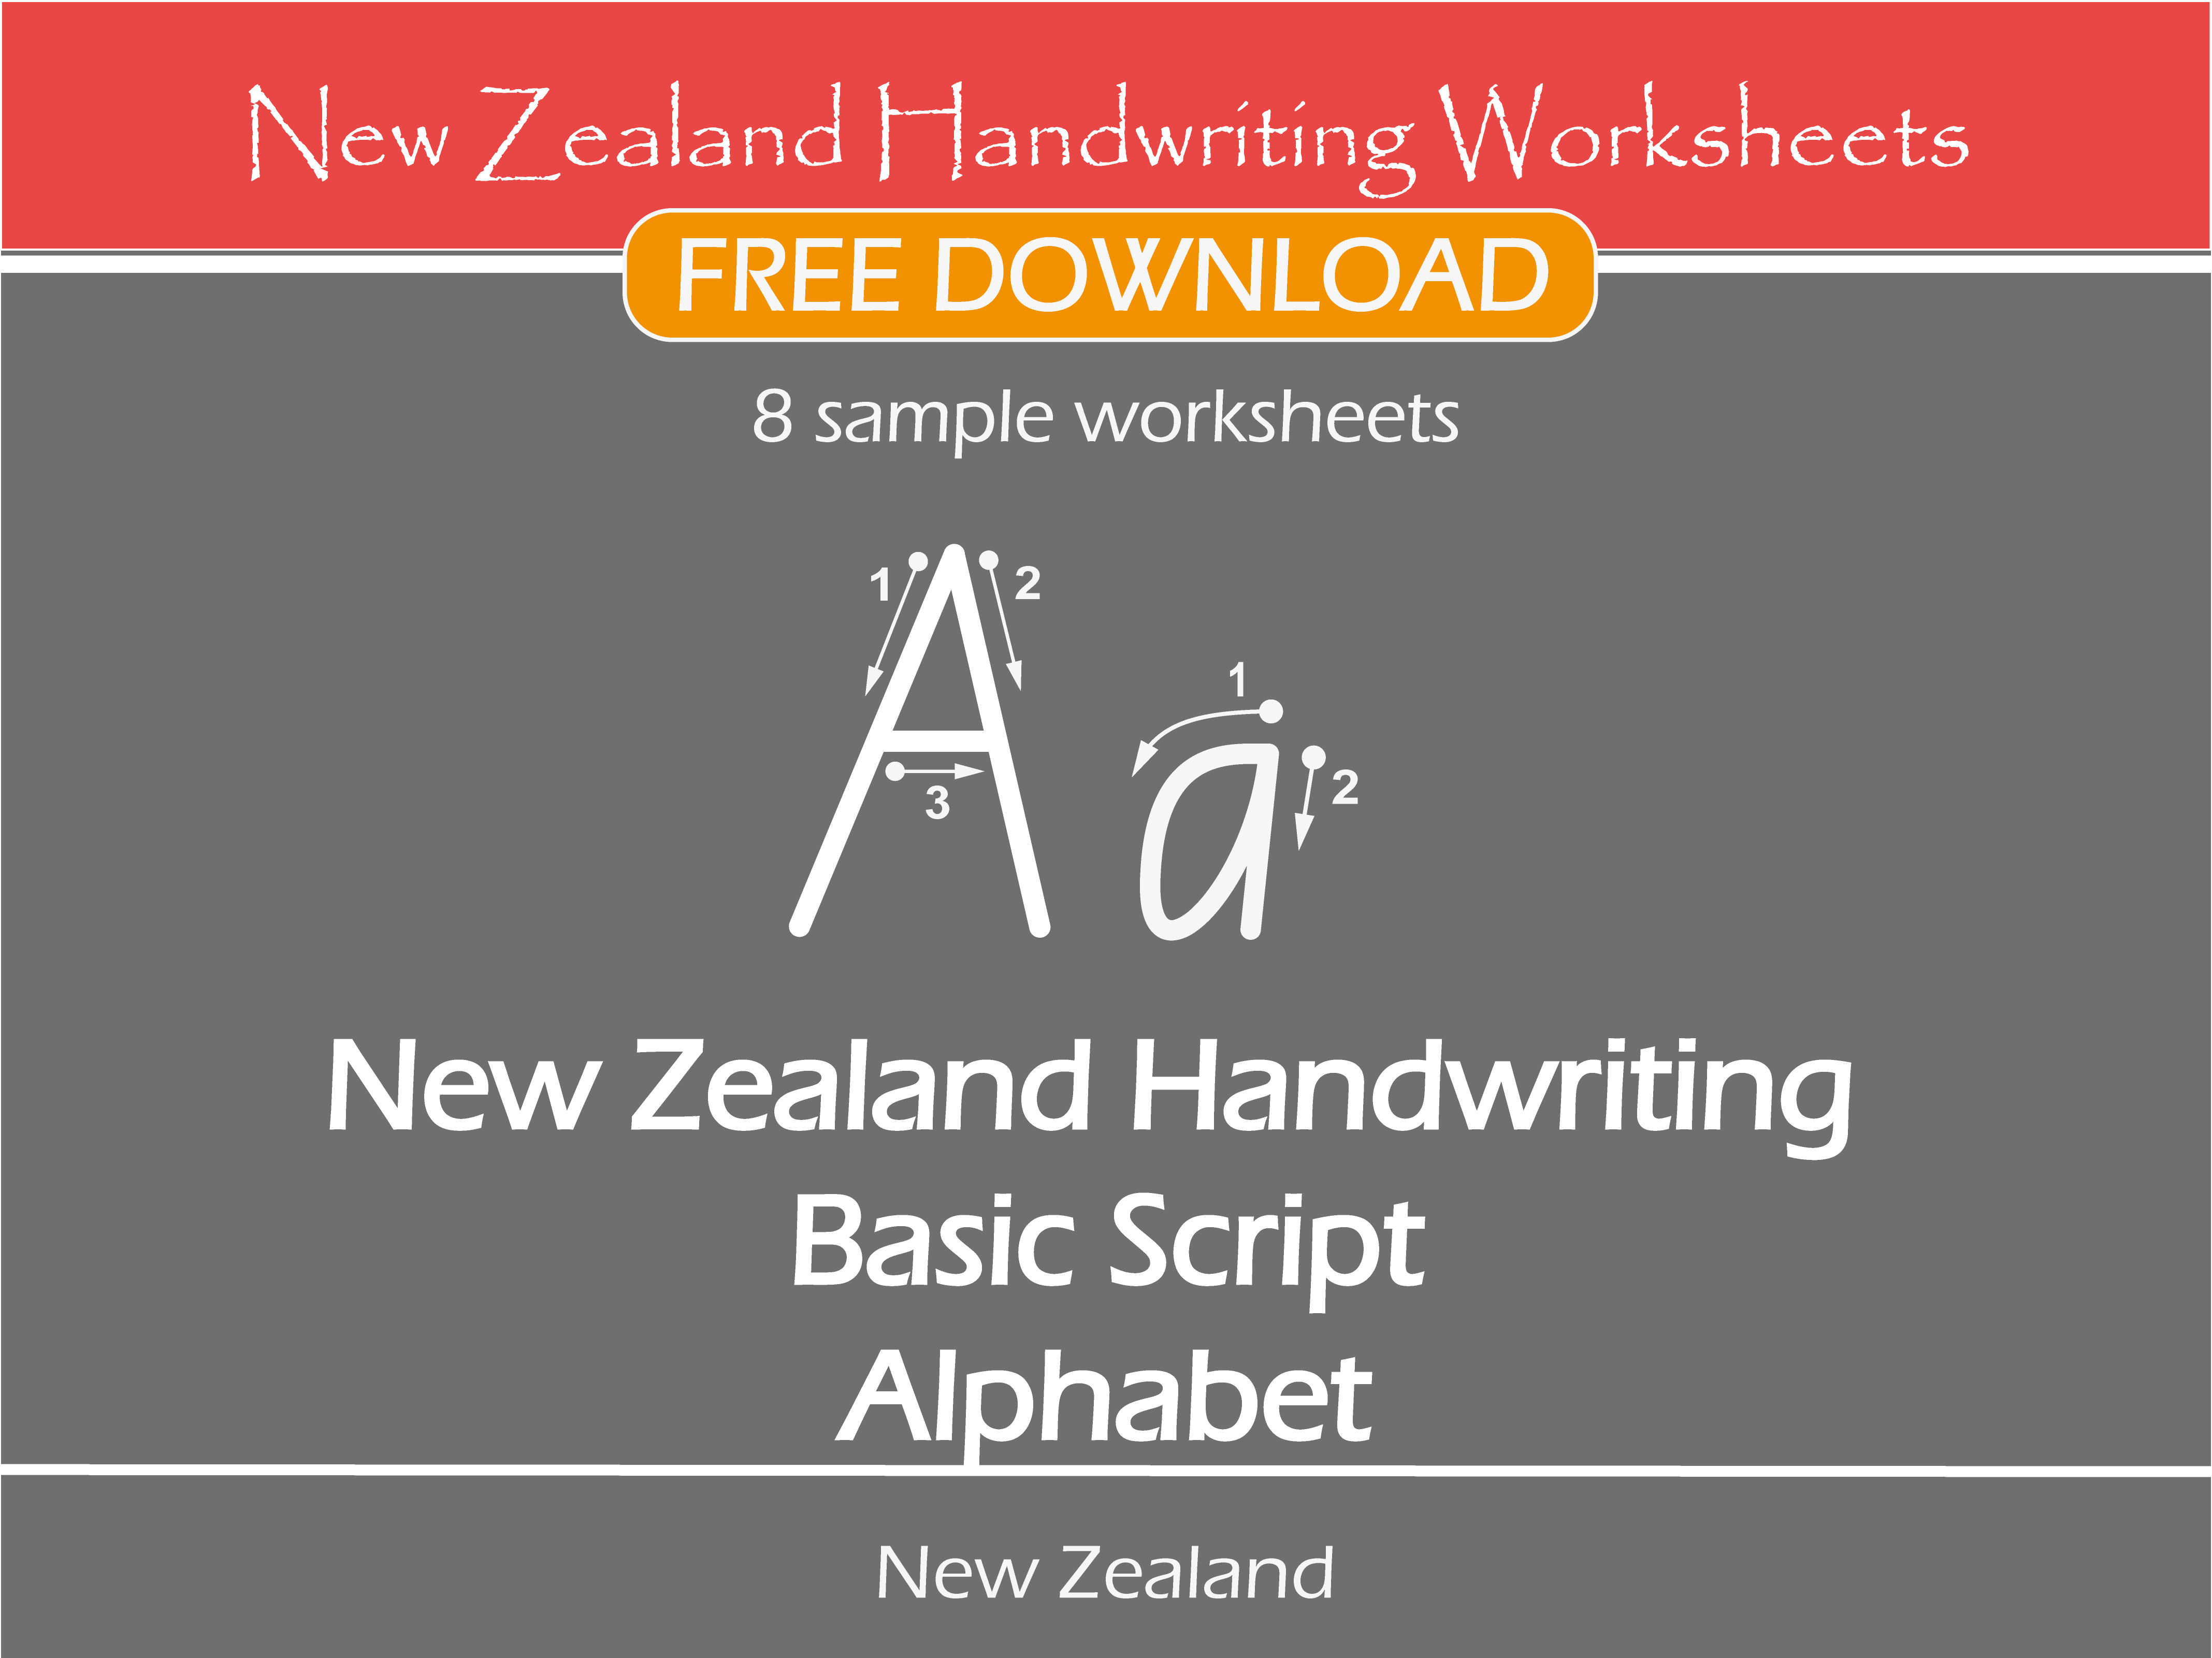 New Zealand Handwriting Worksheets New Zealand Basic